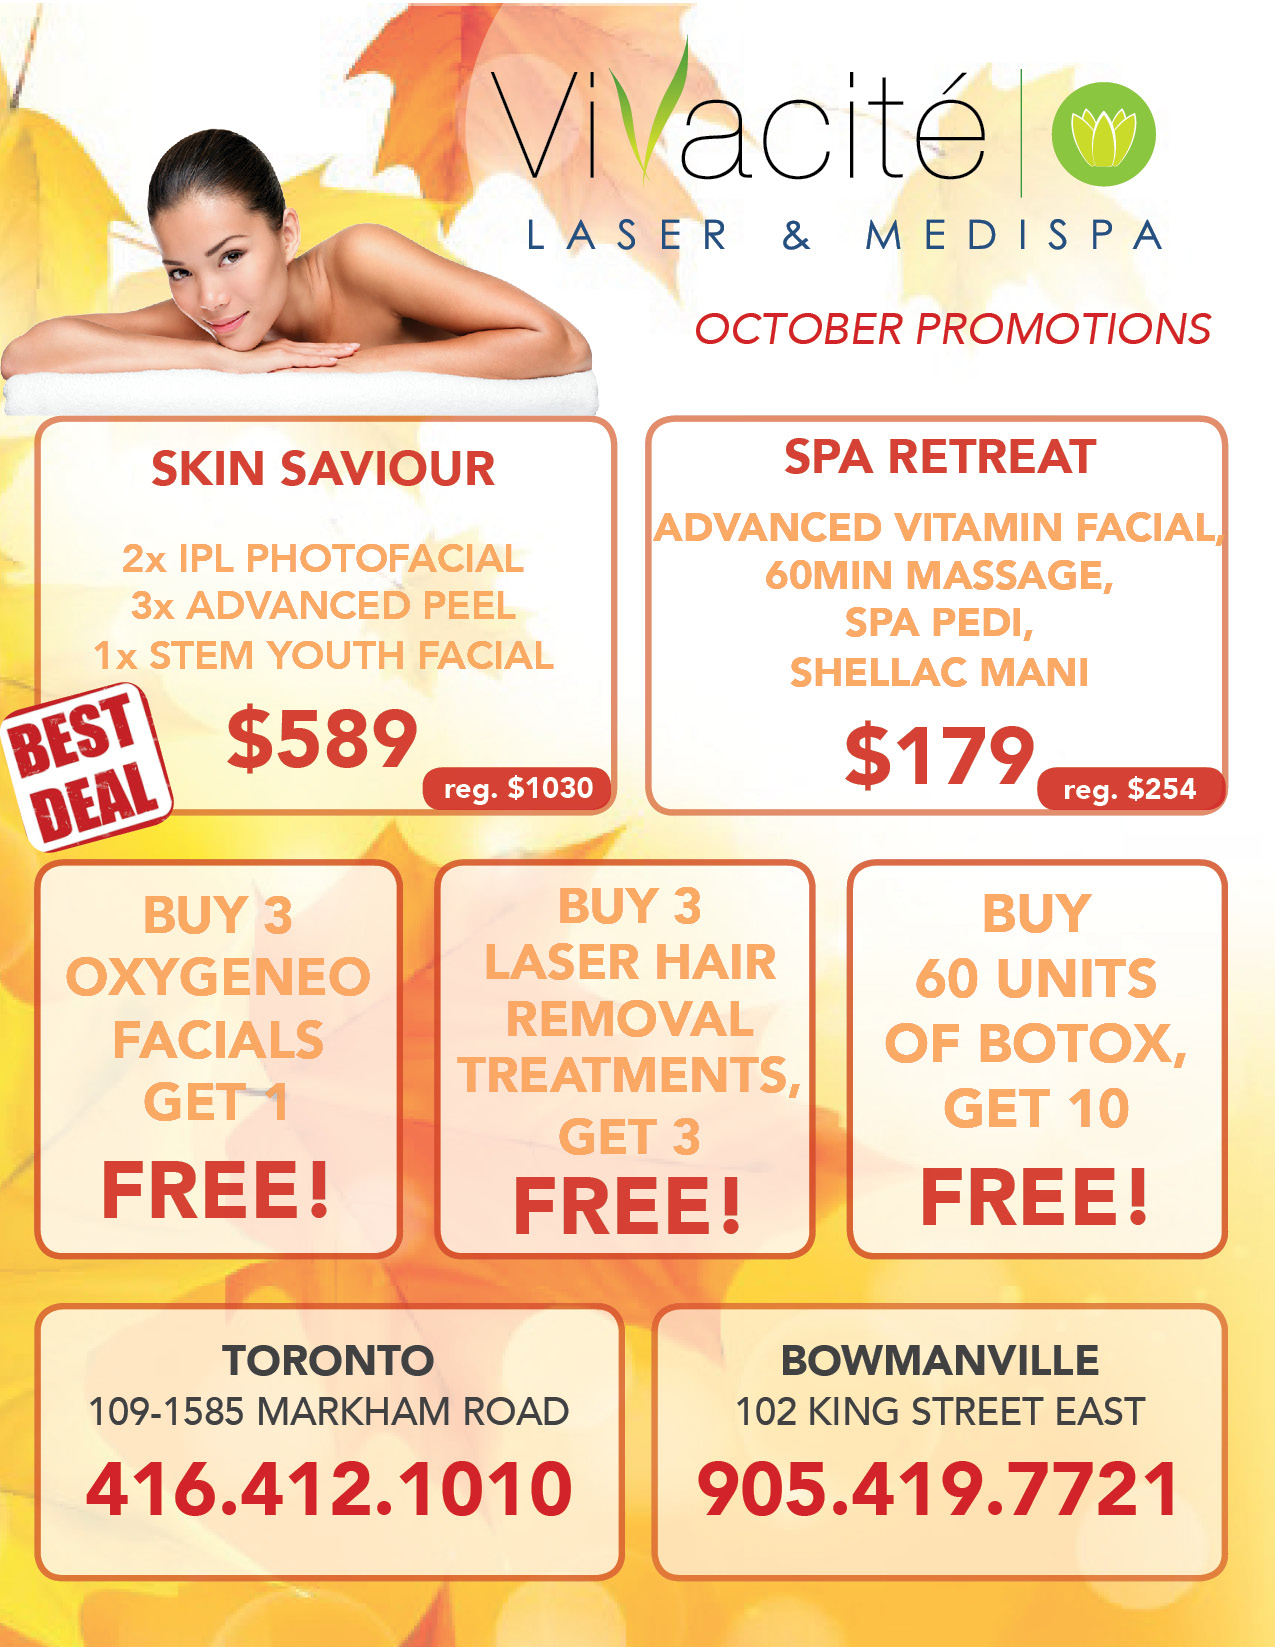 Vivacite Scarborough Location June Promotions